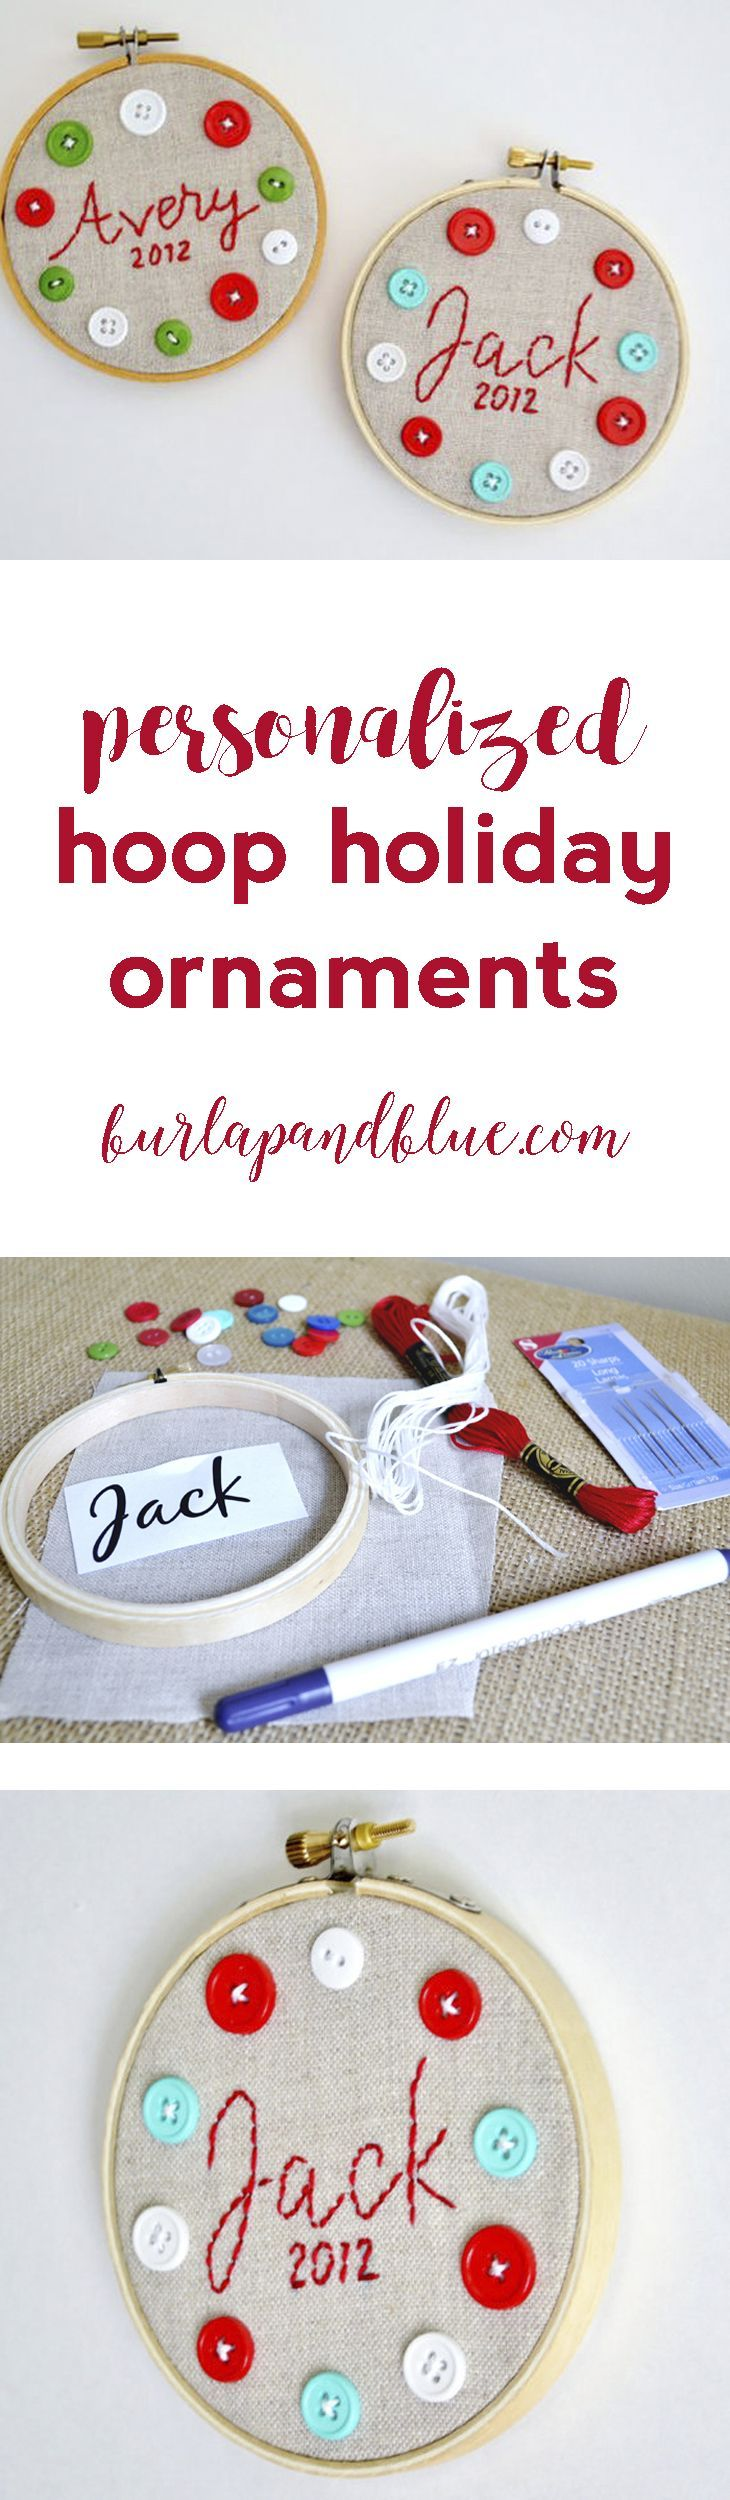 Personalized Hoop Christmas Ornaments